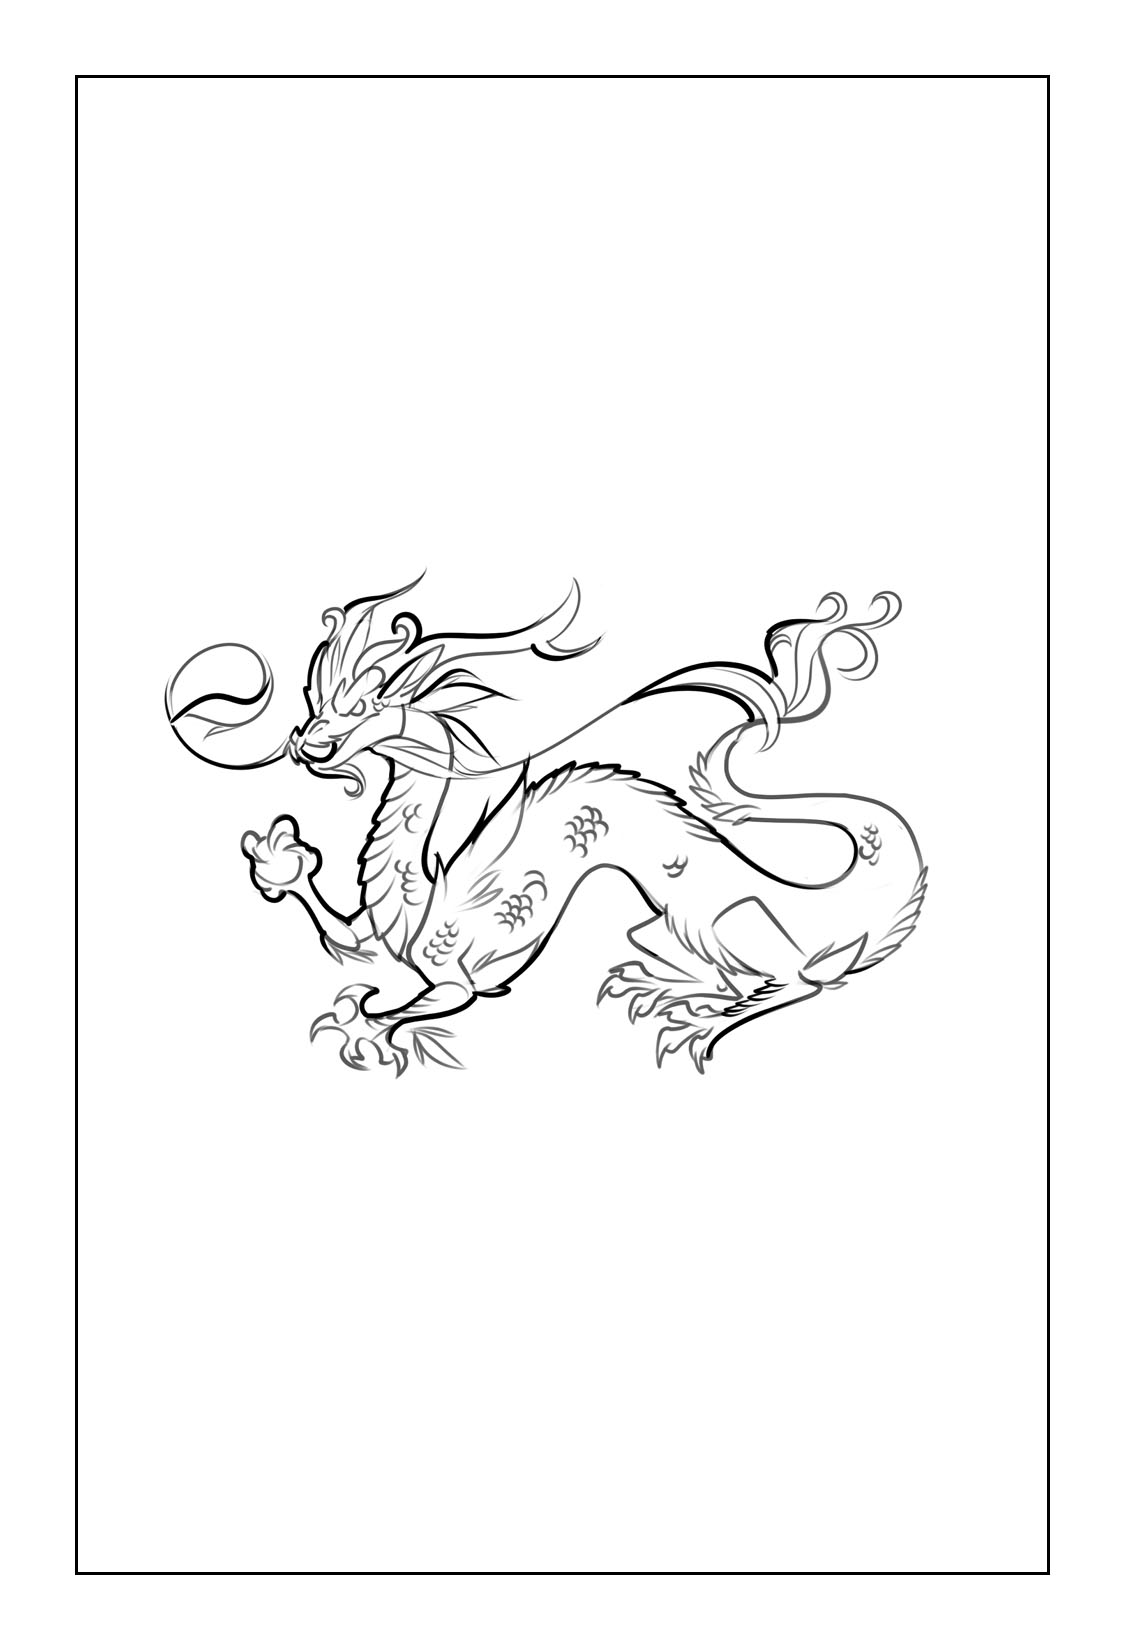 Dragon Coloring Pages coloringrocks